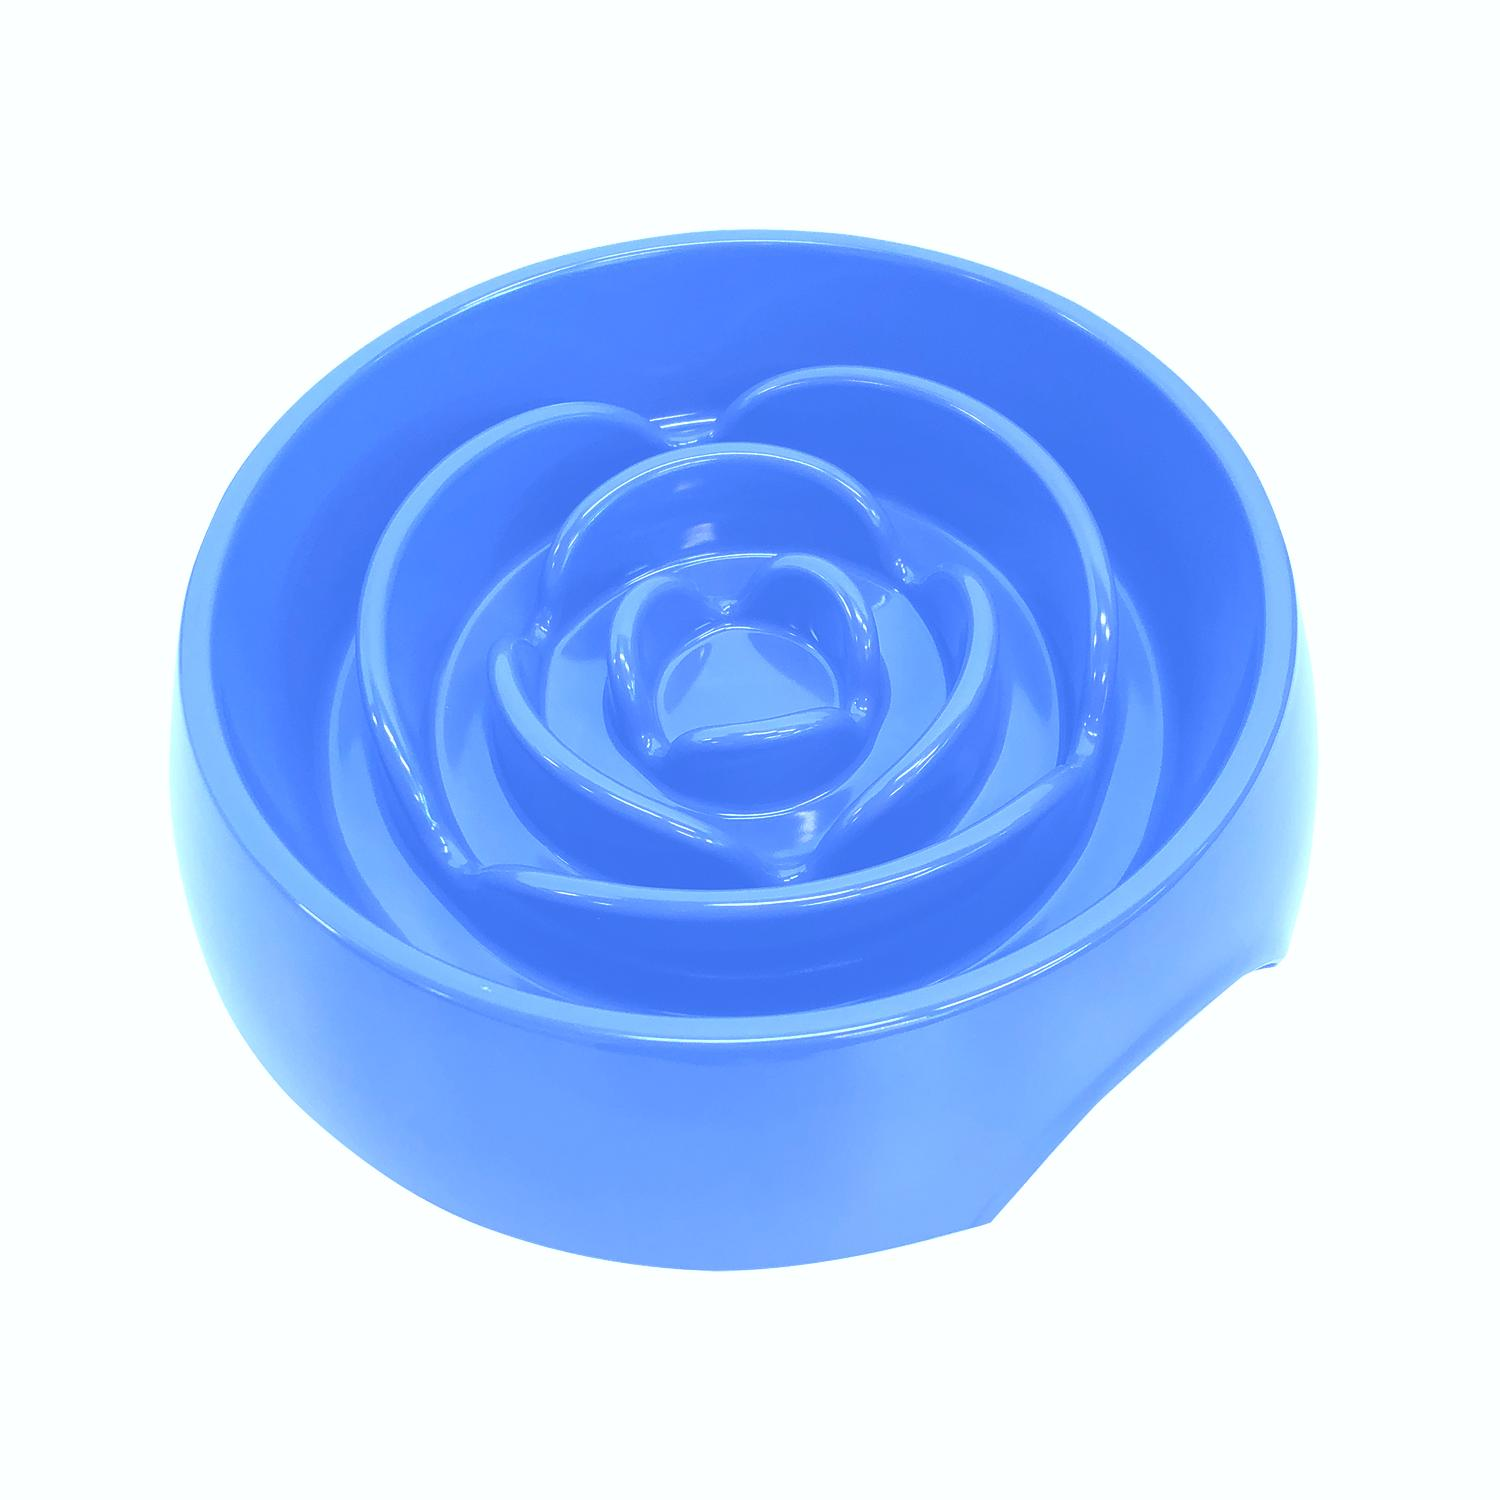 Messy Mutts Interactive Slow Feeder for Dogs, Blue